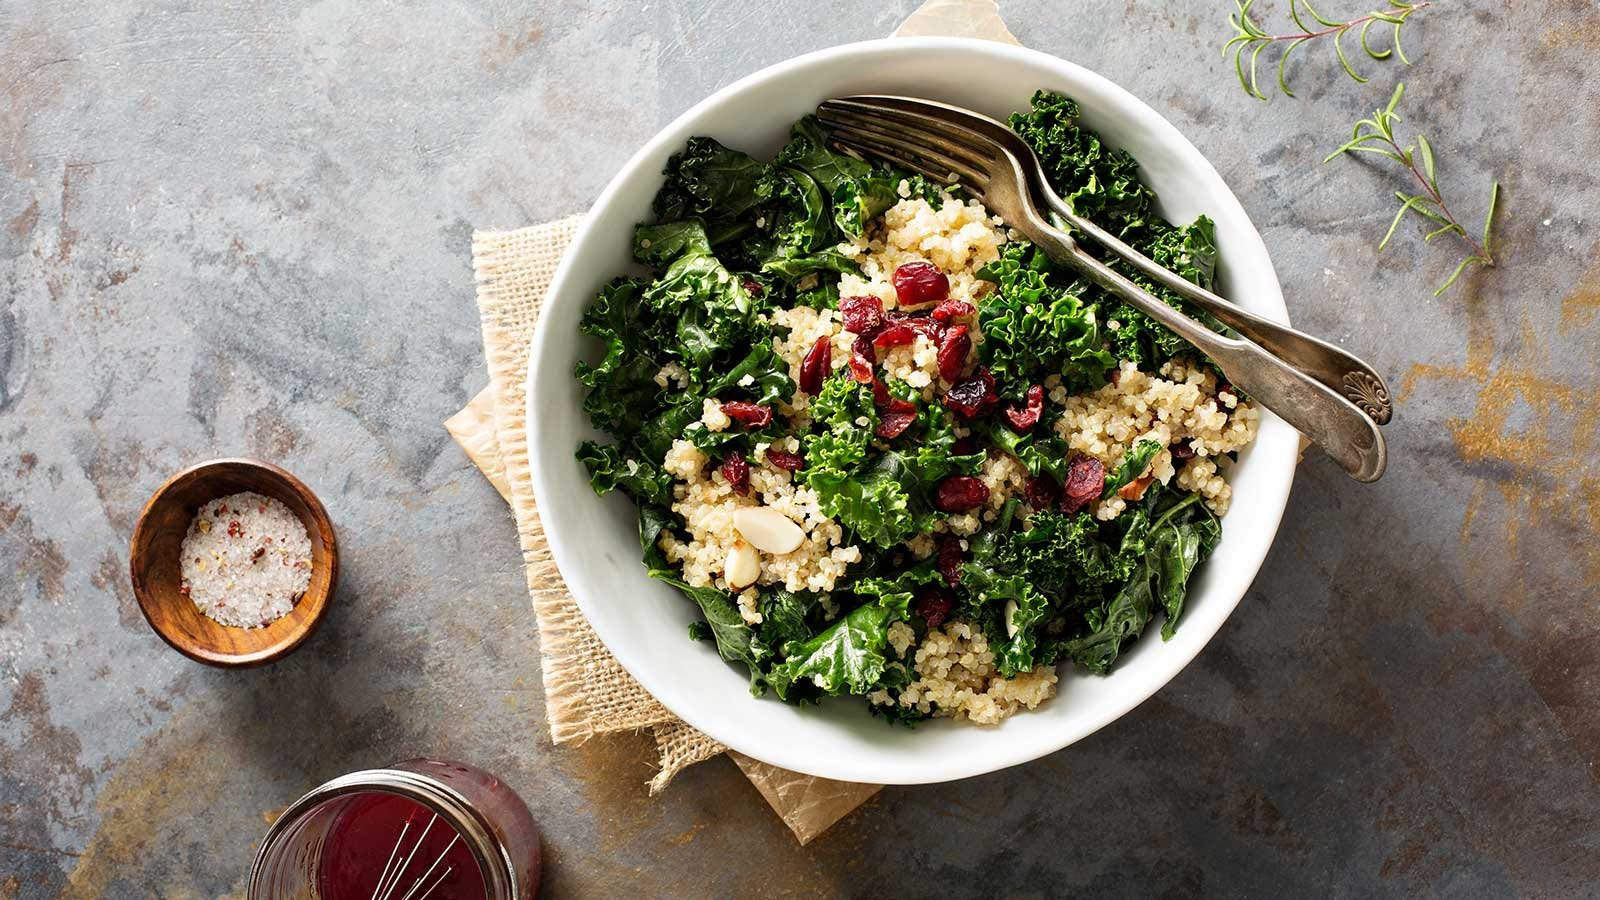 A hearty raw kale salad, loaded with quinoa grains.